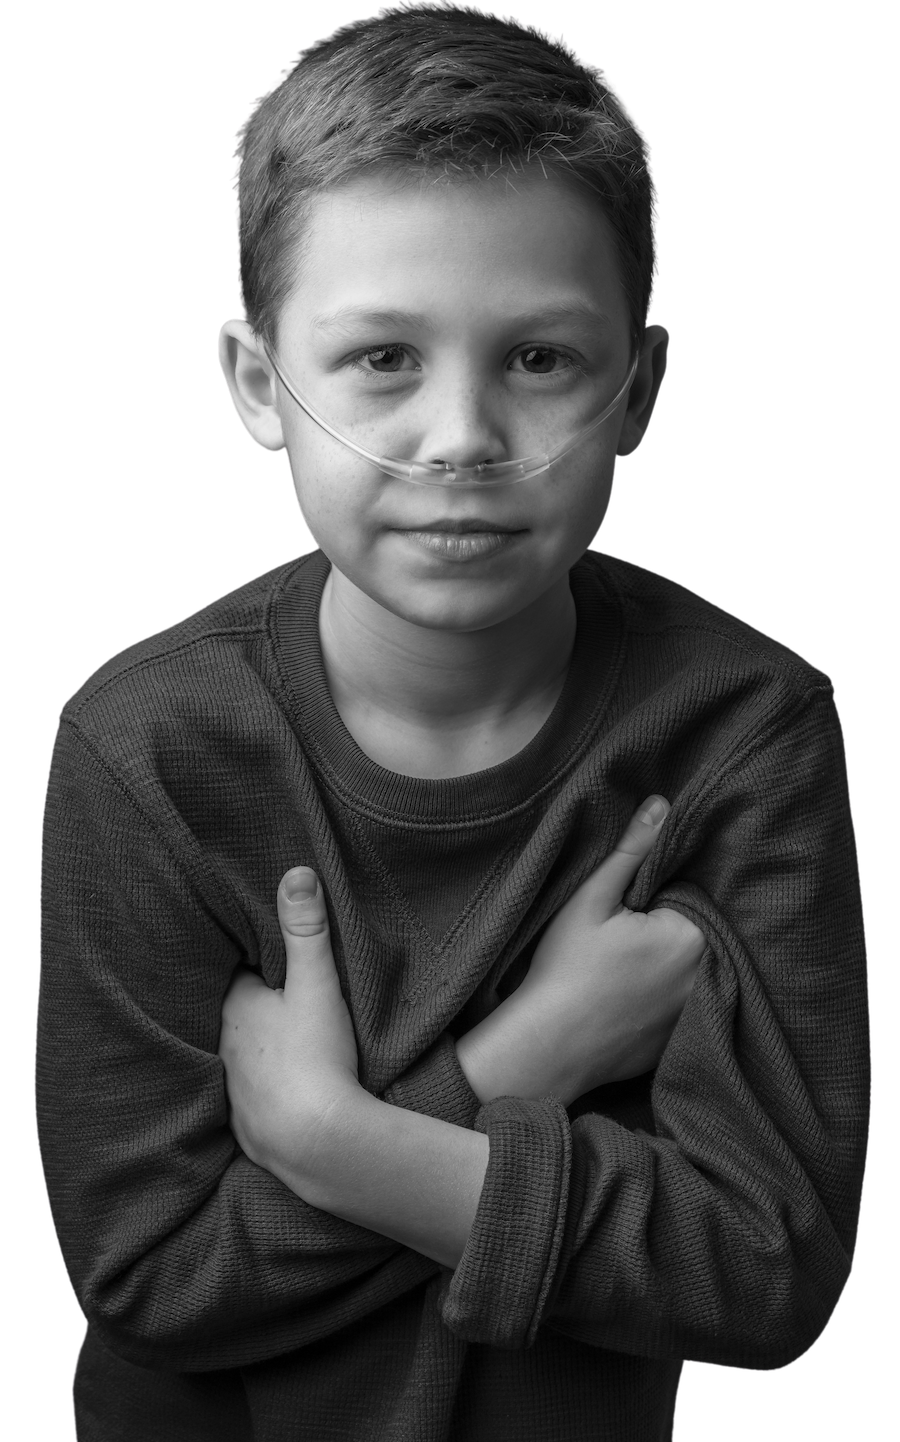 Children's Miracle Network Hospital child